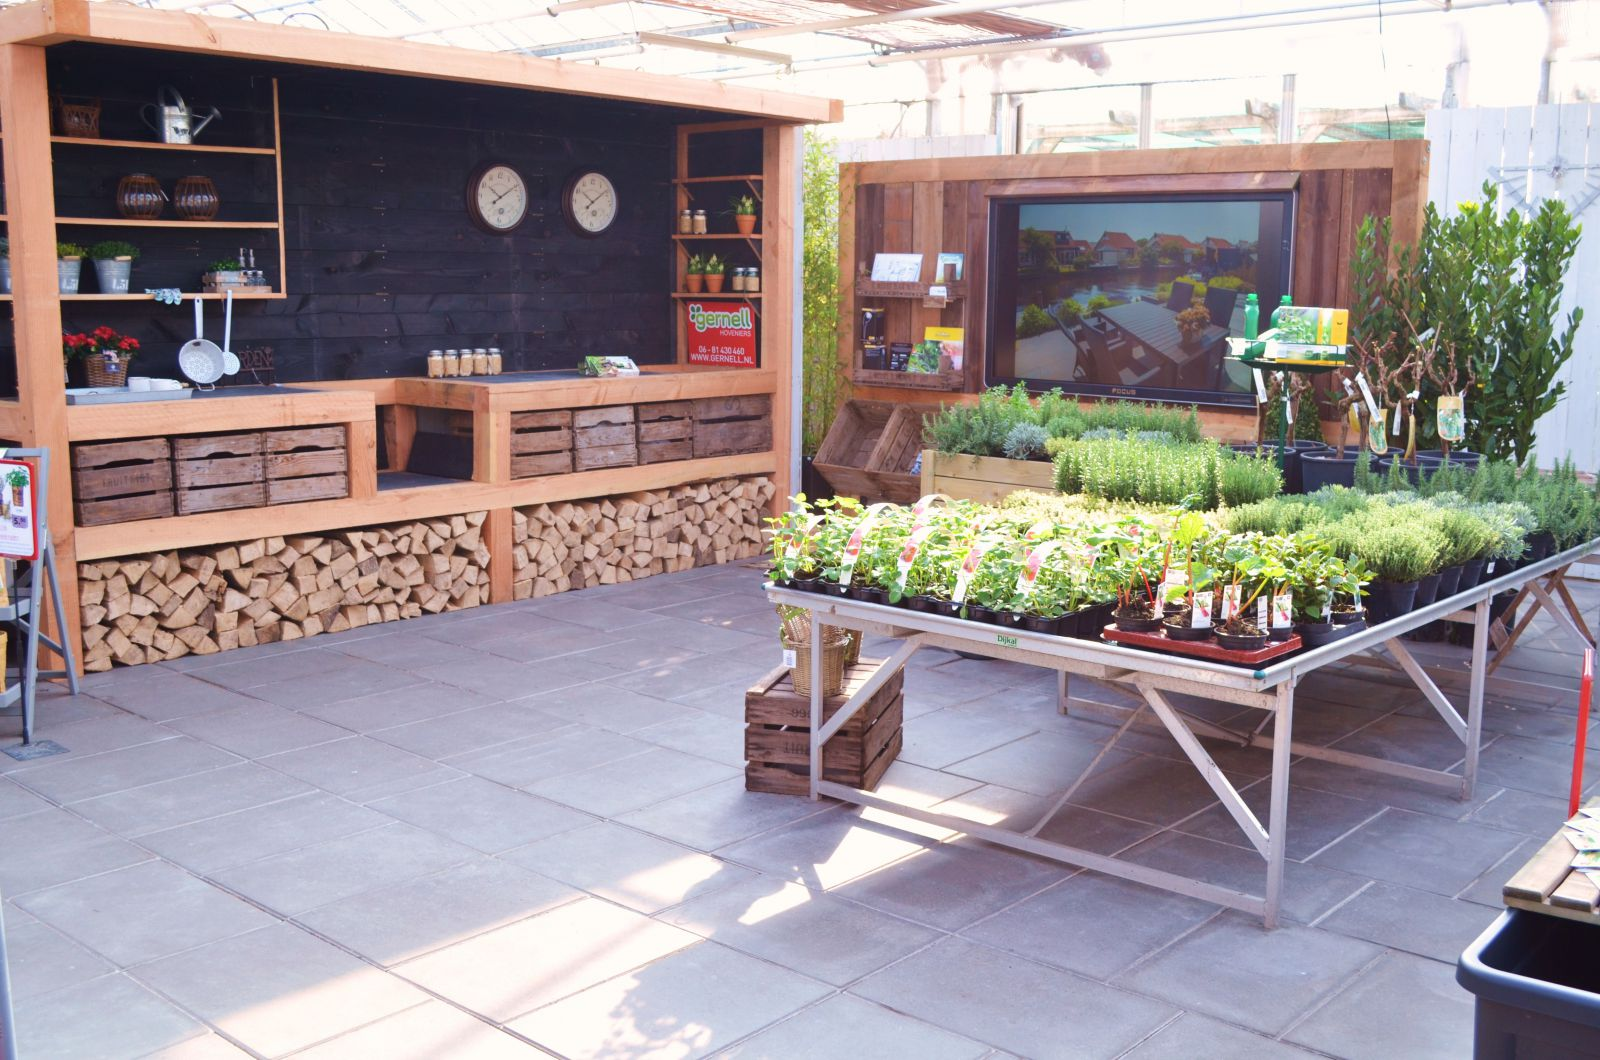 Moestuin tuincentrum gernell for Huis in tuin